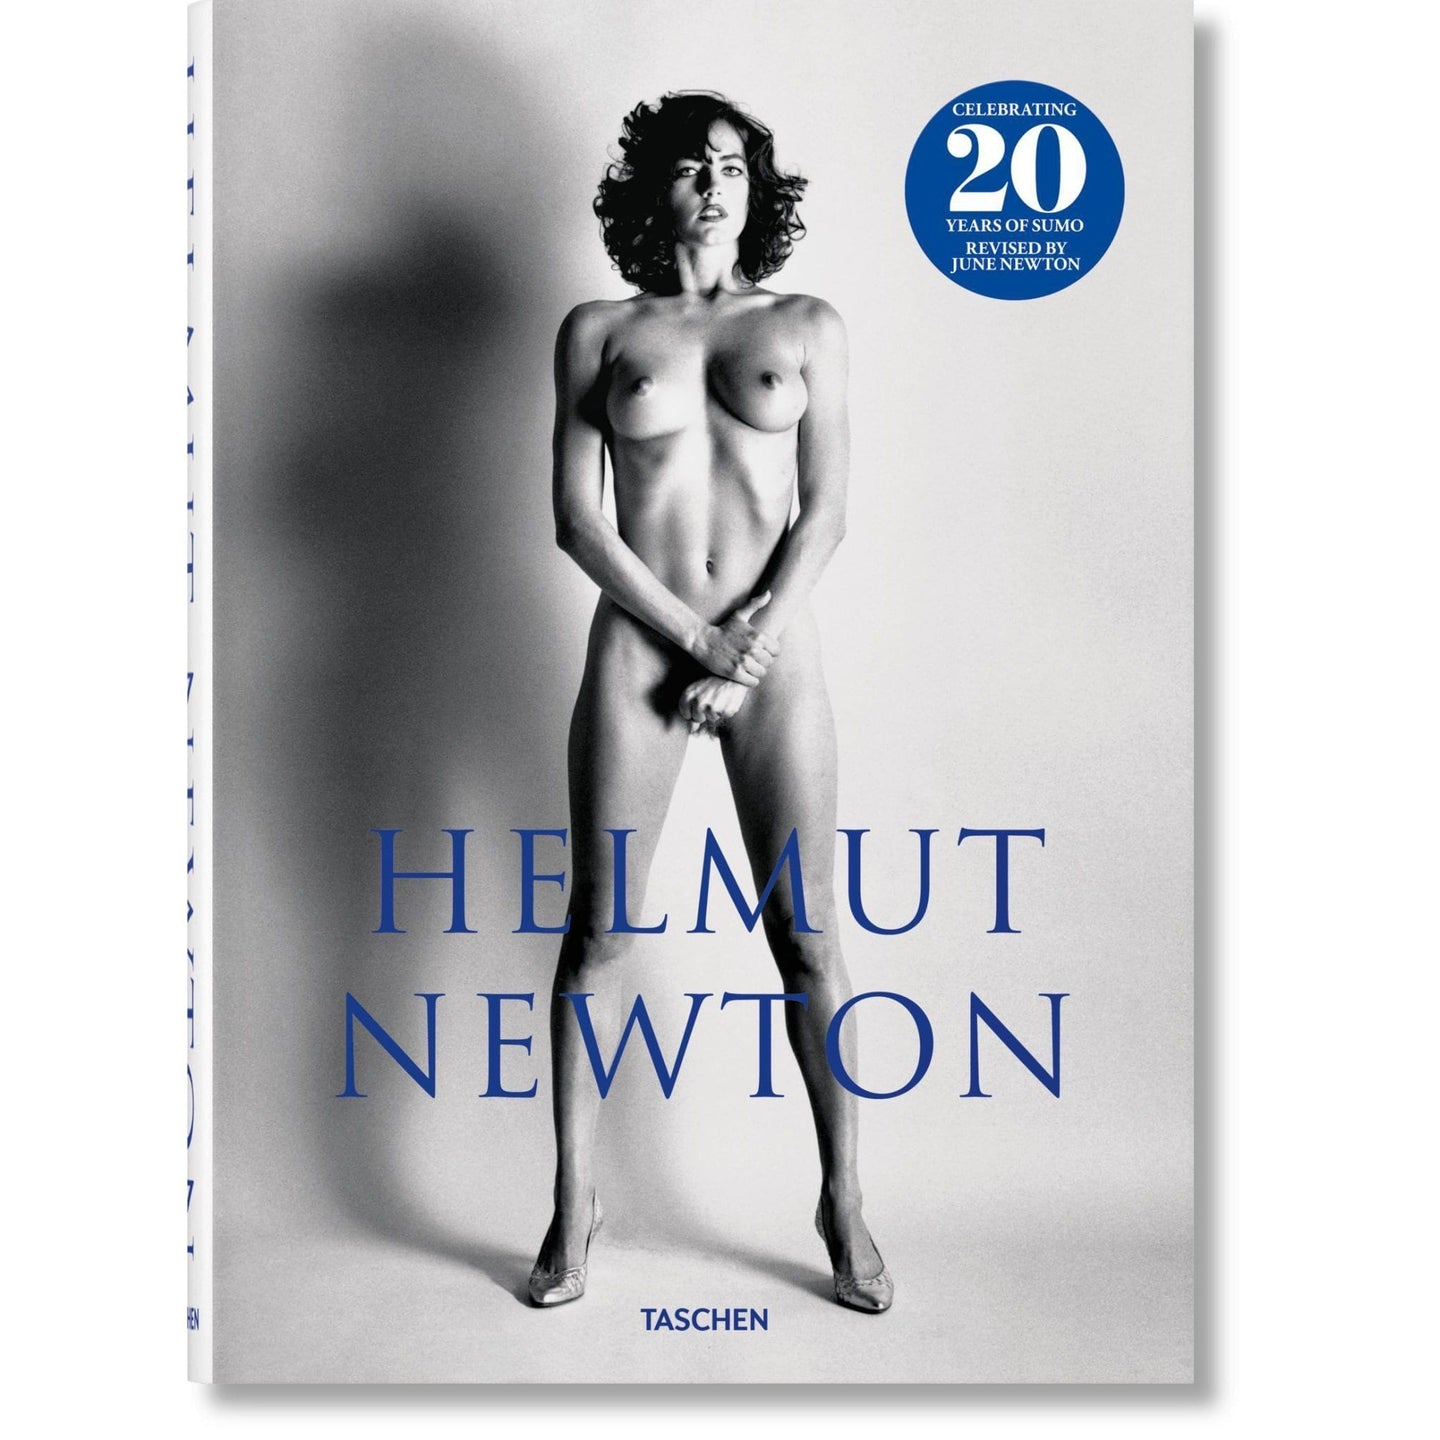 Taschen Helmut Newton - SUMO - 20th Anniversary / Neighborhood Goods